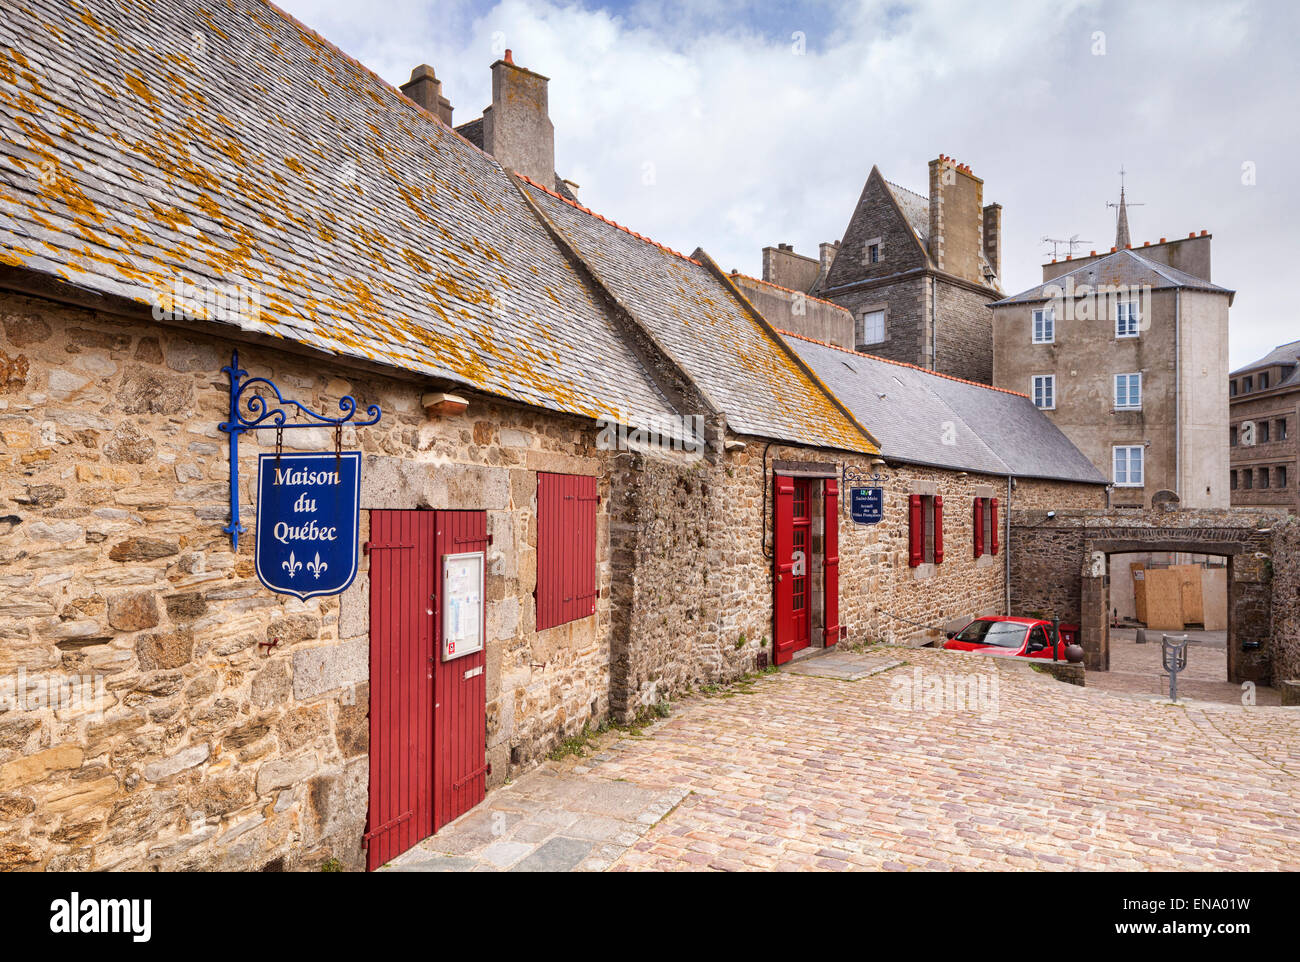 The Maison de Quebec in the old walled town of Saint-Malo, Britanny. - Stock Image